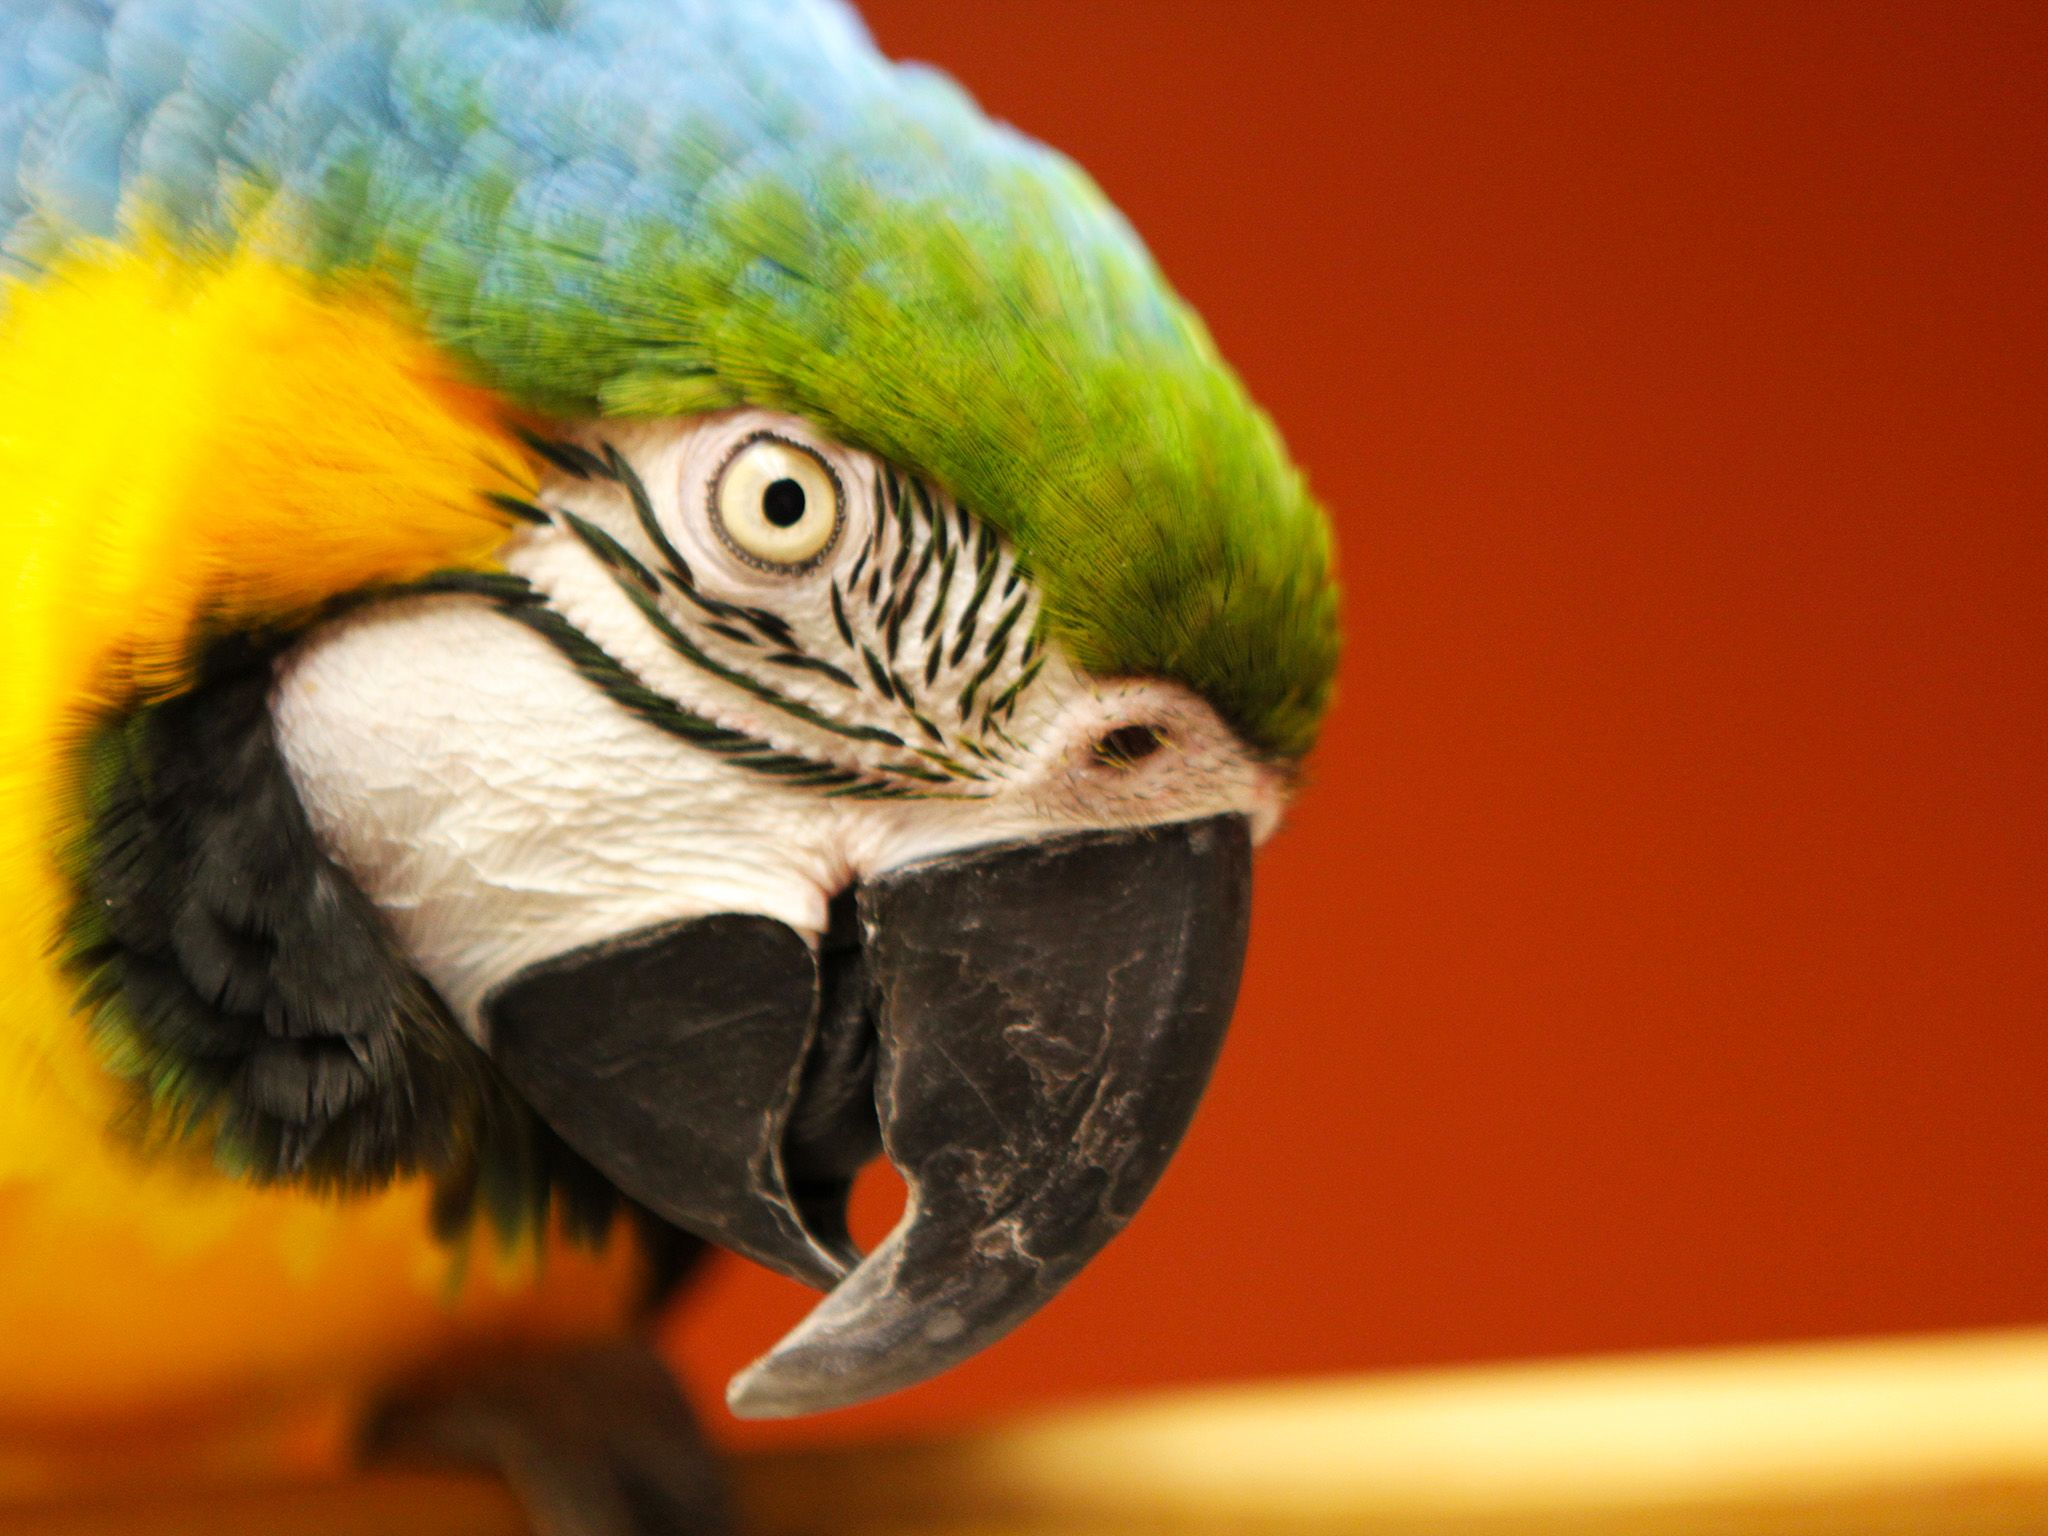 Dr. Kelleher's blue and gold macaw, Xander, sitting on a perch in the treatment room. This image ... [Photo of the day - oktober 2014]